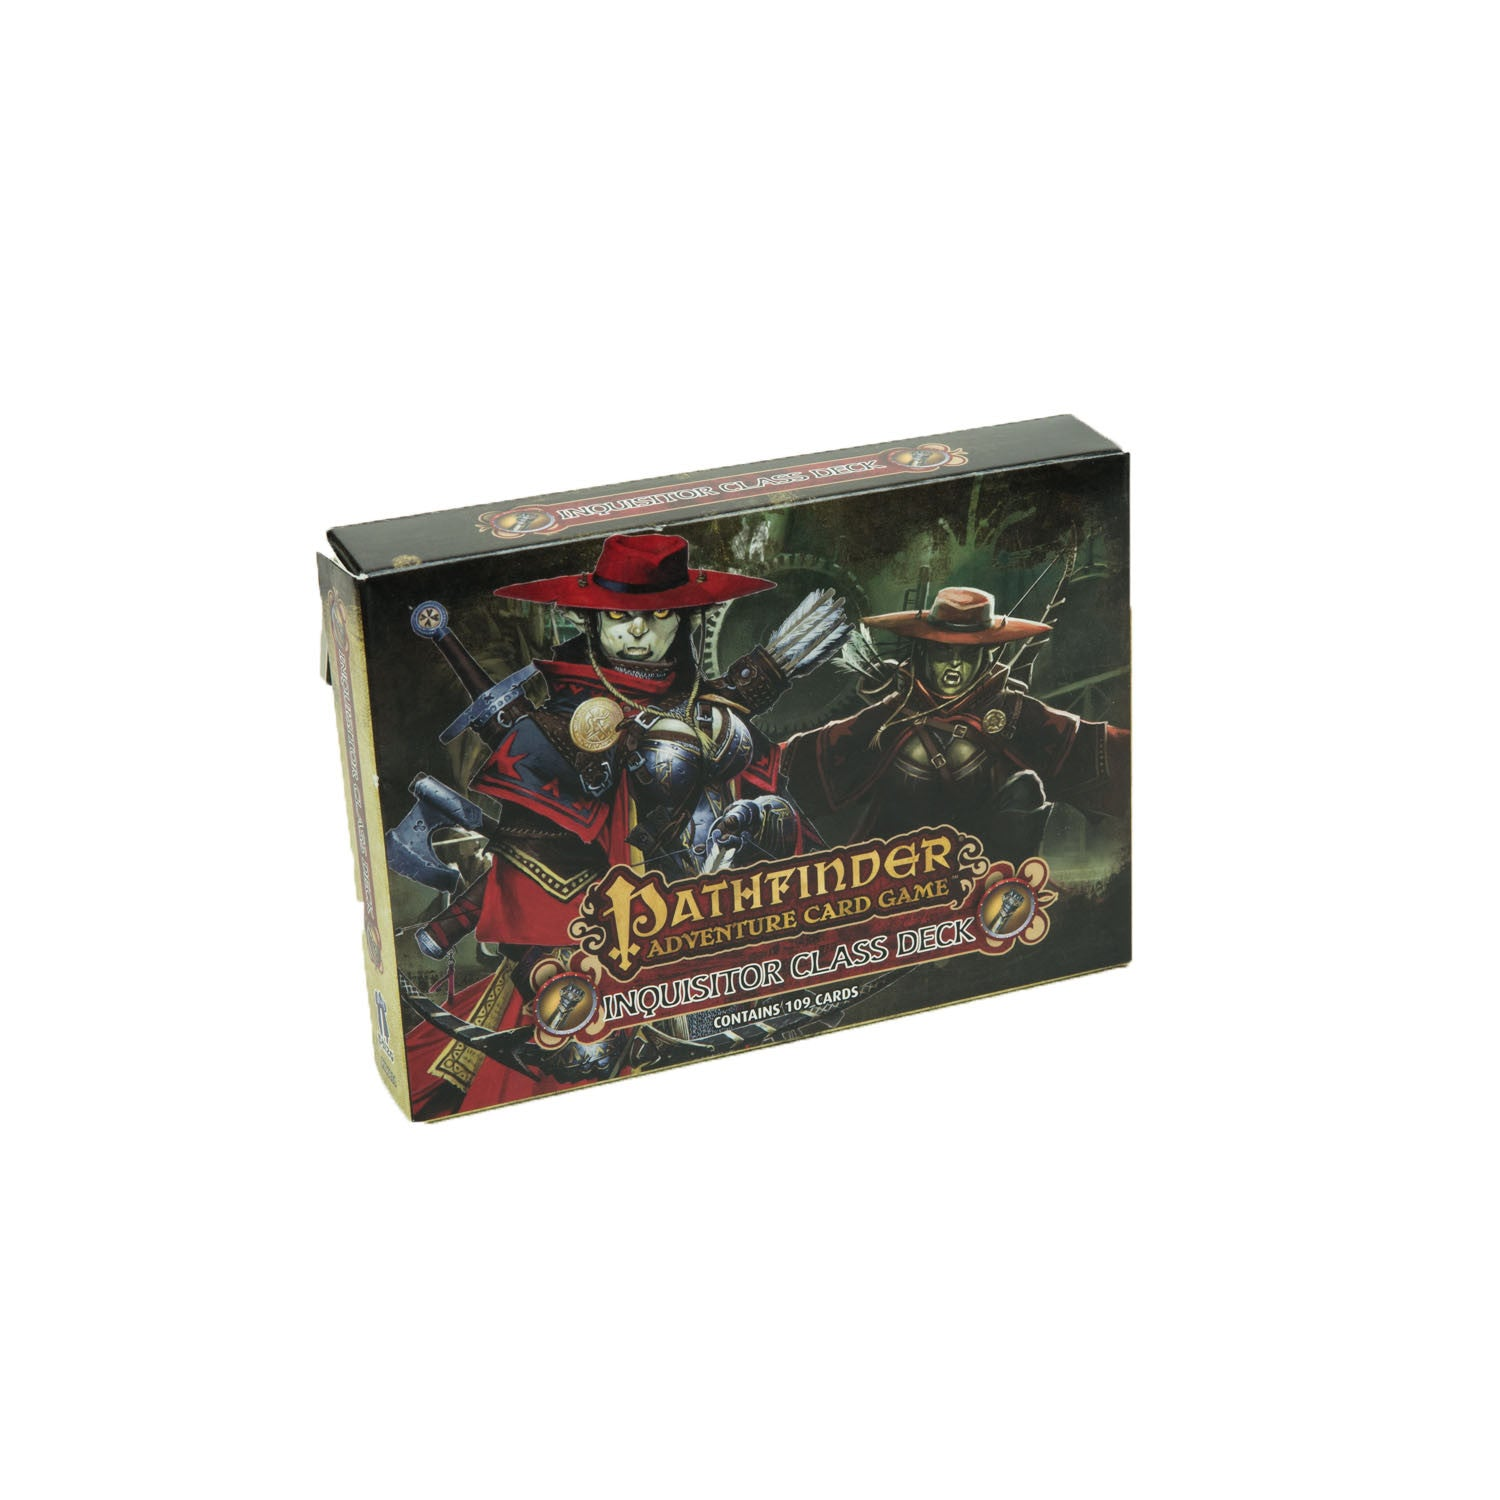 Pathfinder Adventure Card Game: Inquisitor Class Deck